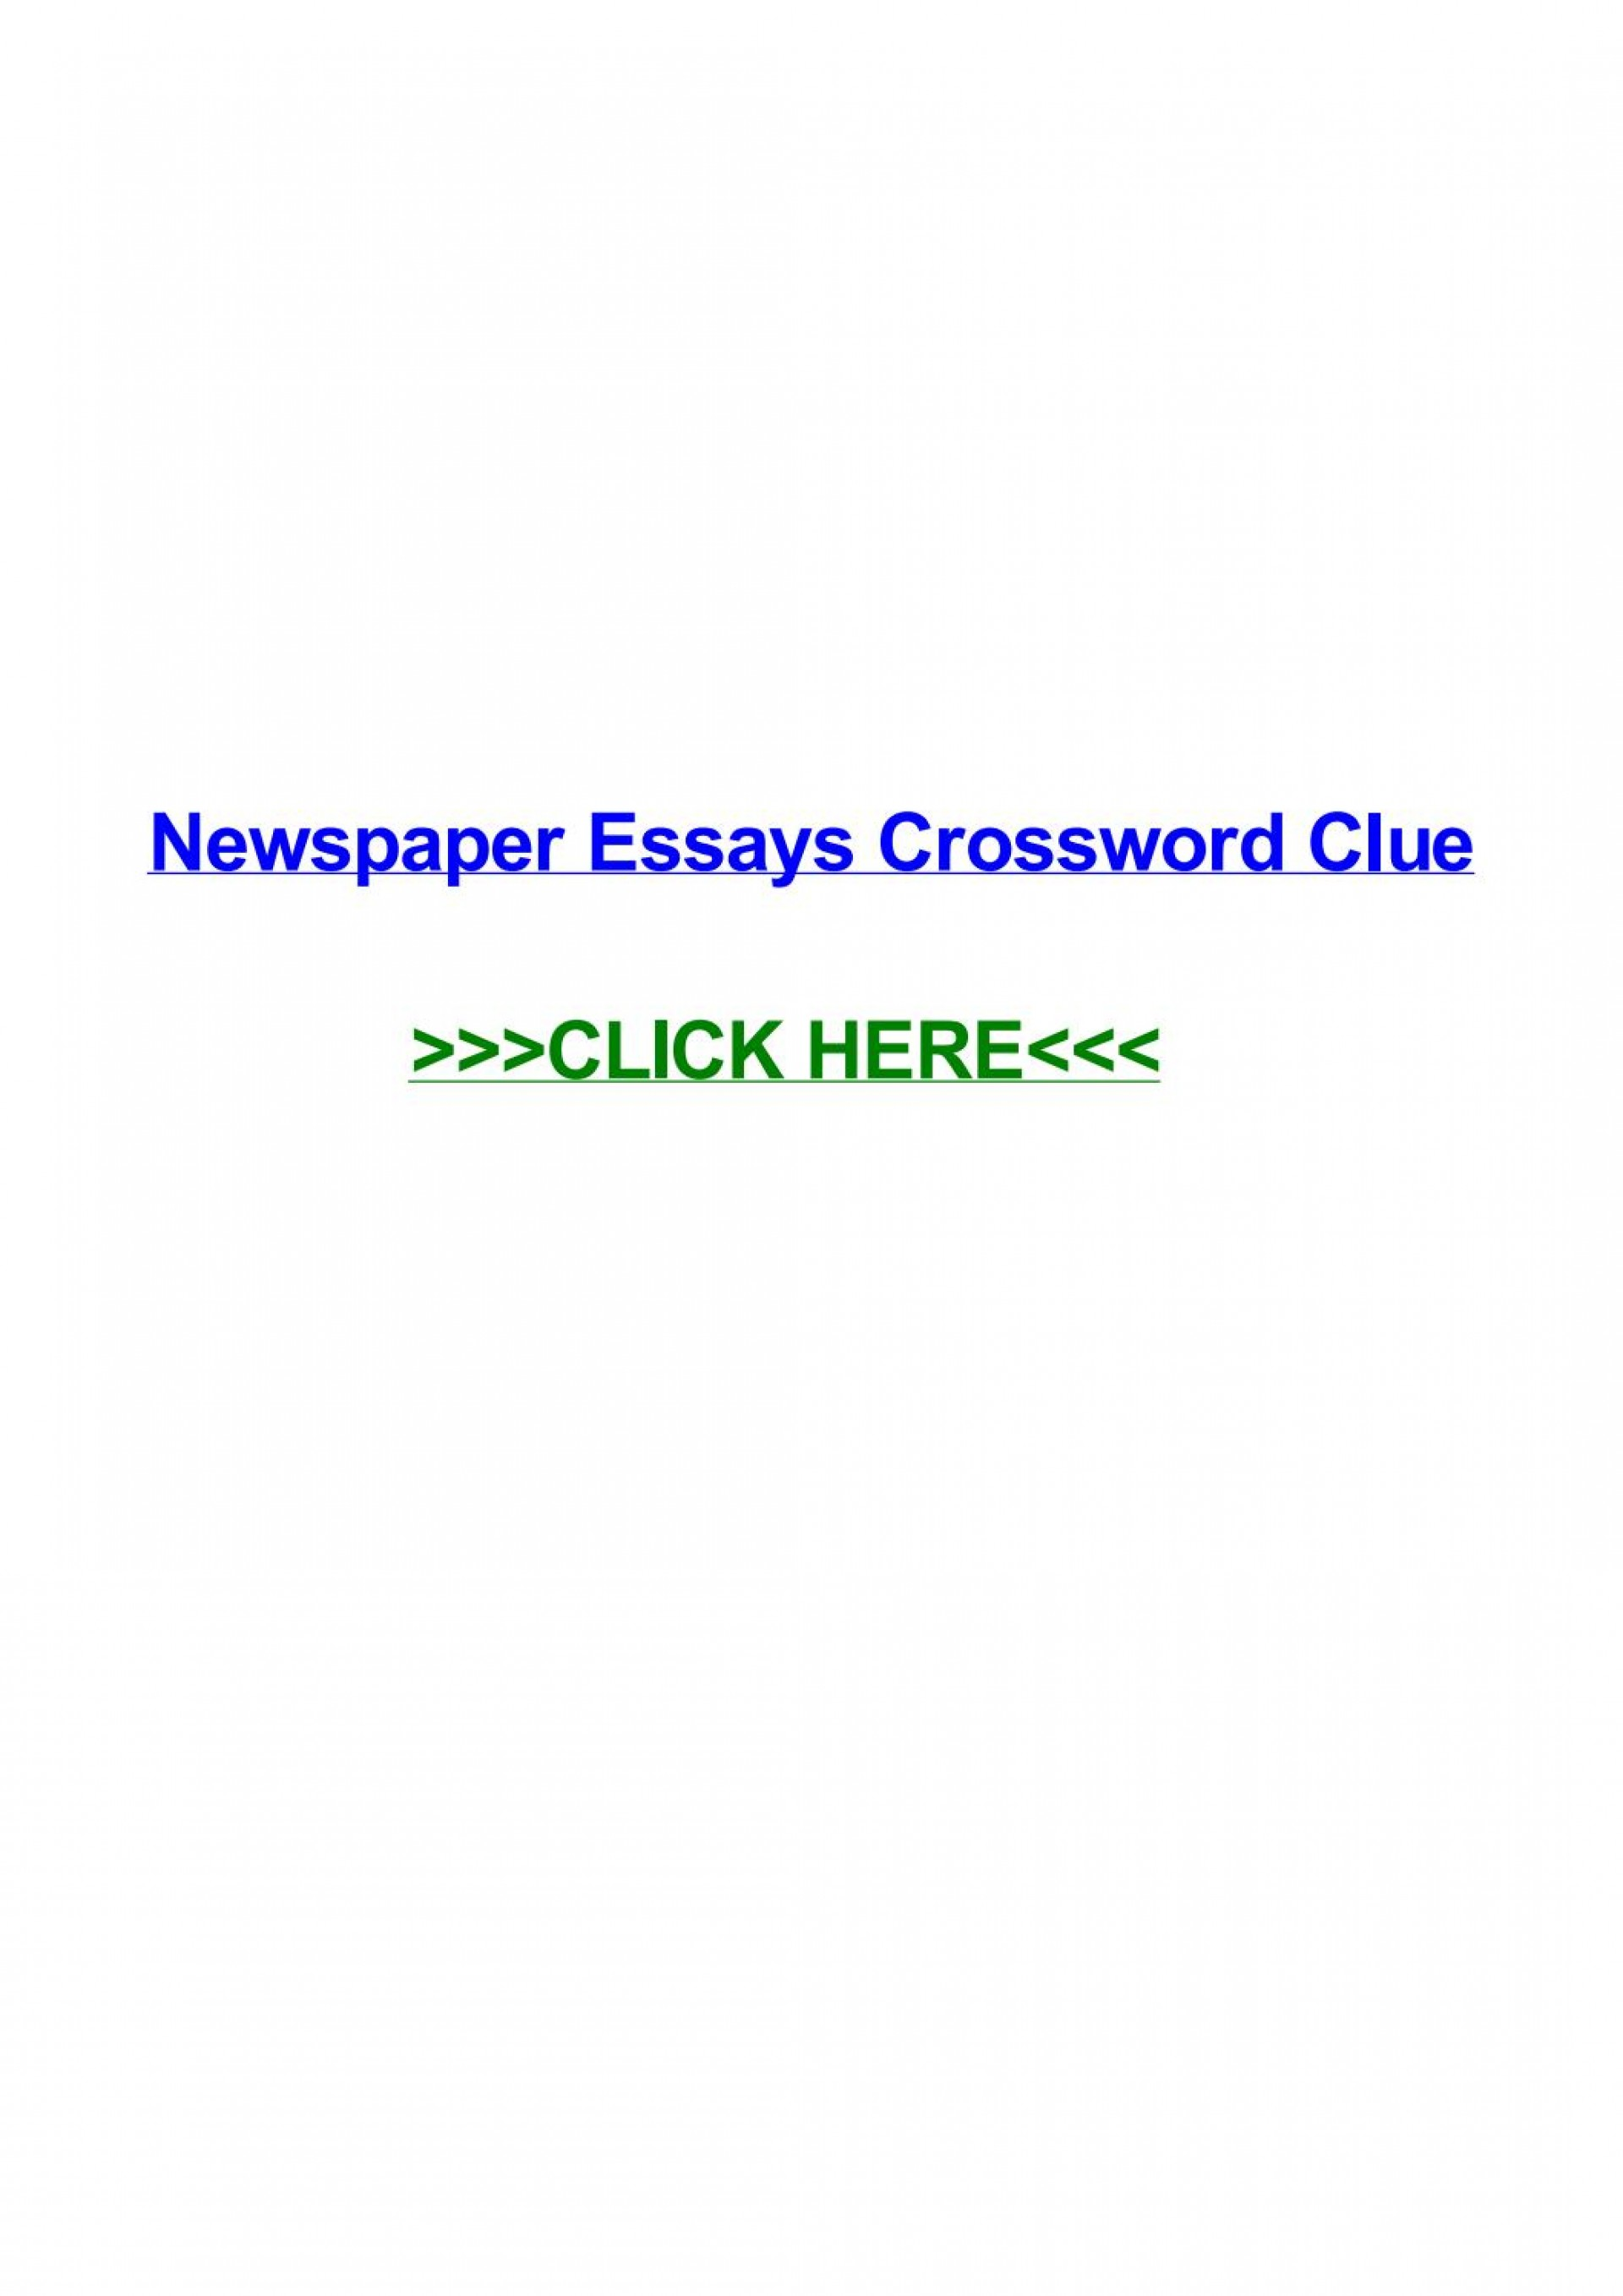 016 Political Essay Crossword Page 1 Dreaded Puzzle Clue 1920